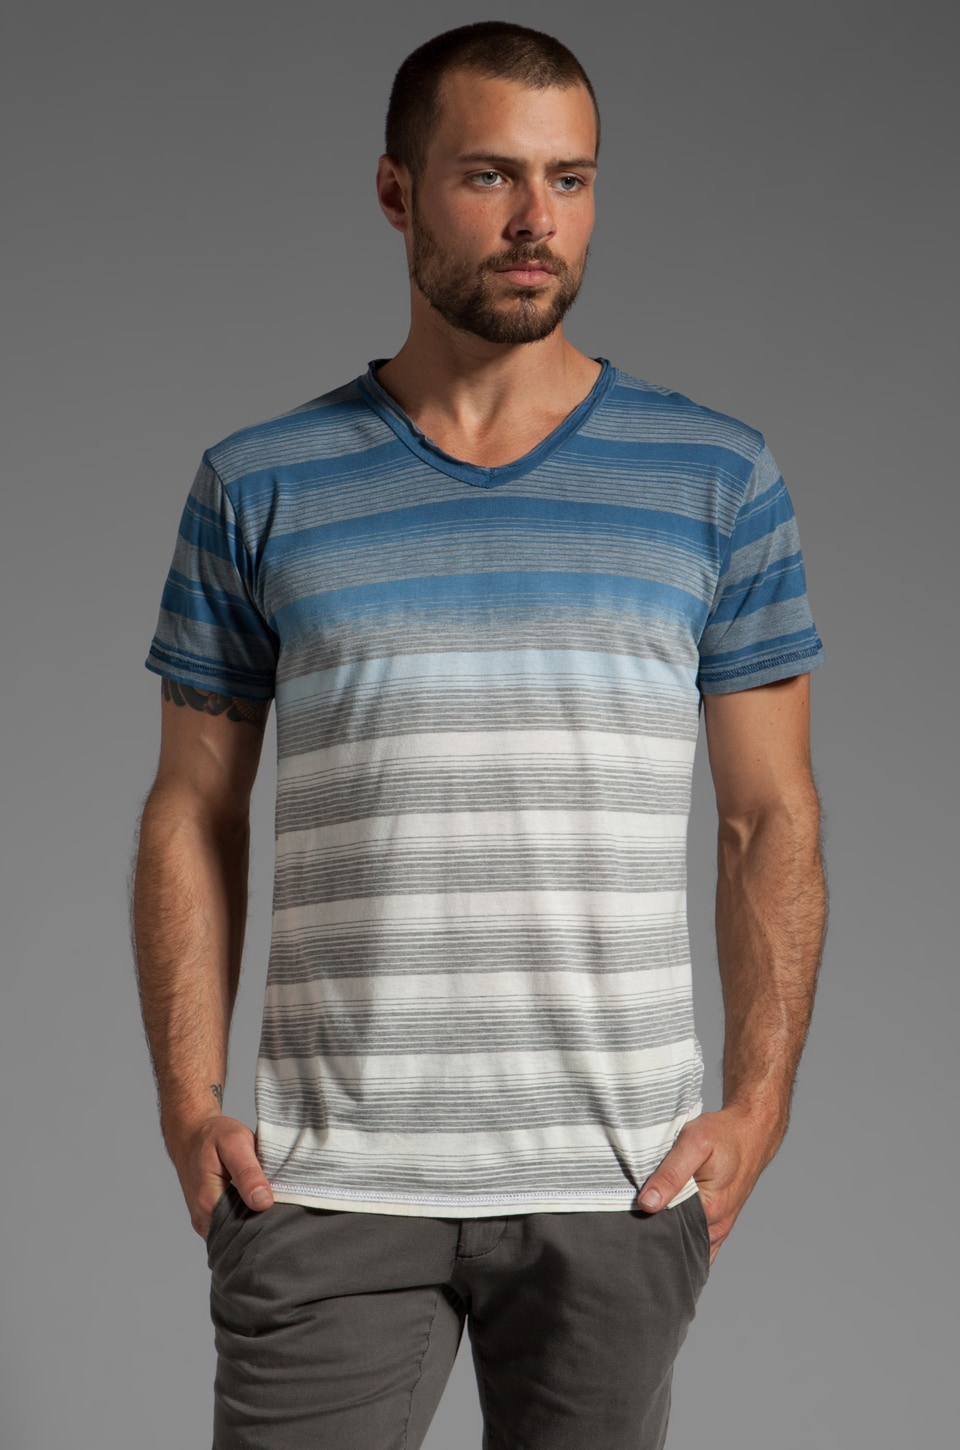 Cohesive & co. Labrea S/S V-Neck Striped Tee in Navy